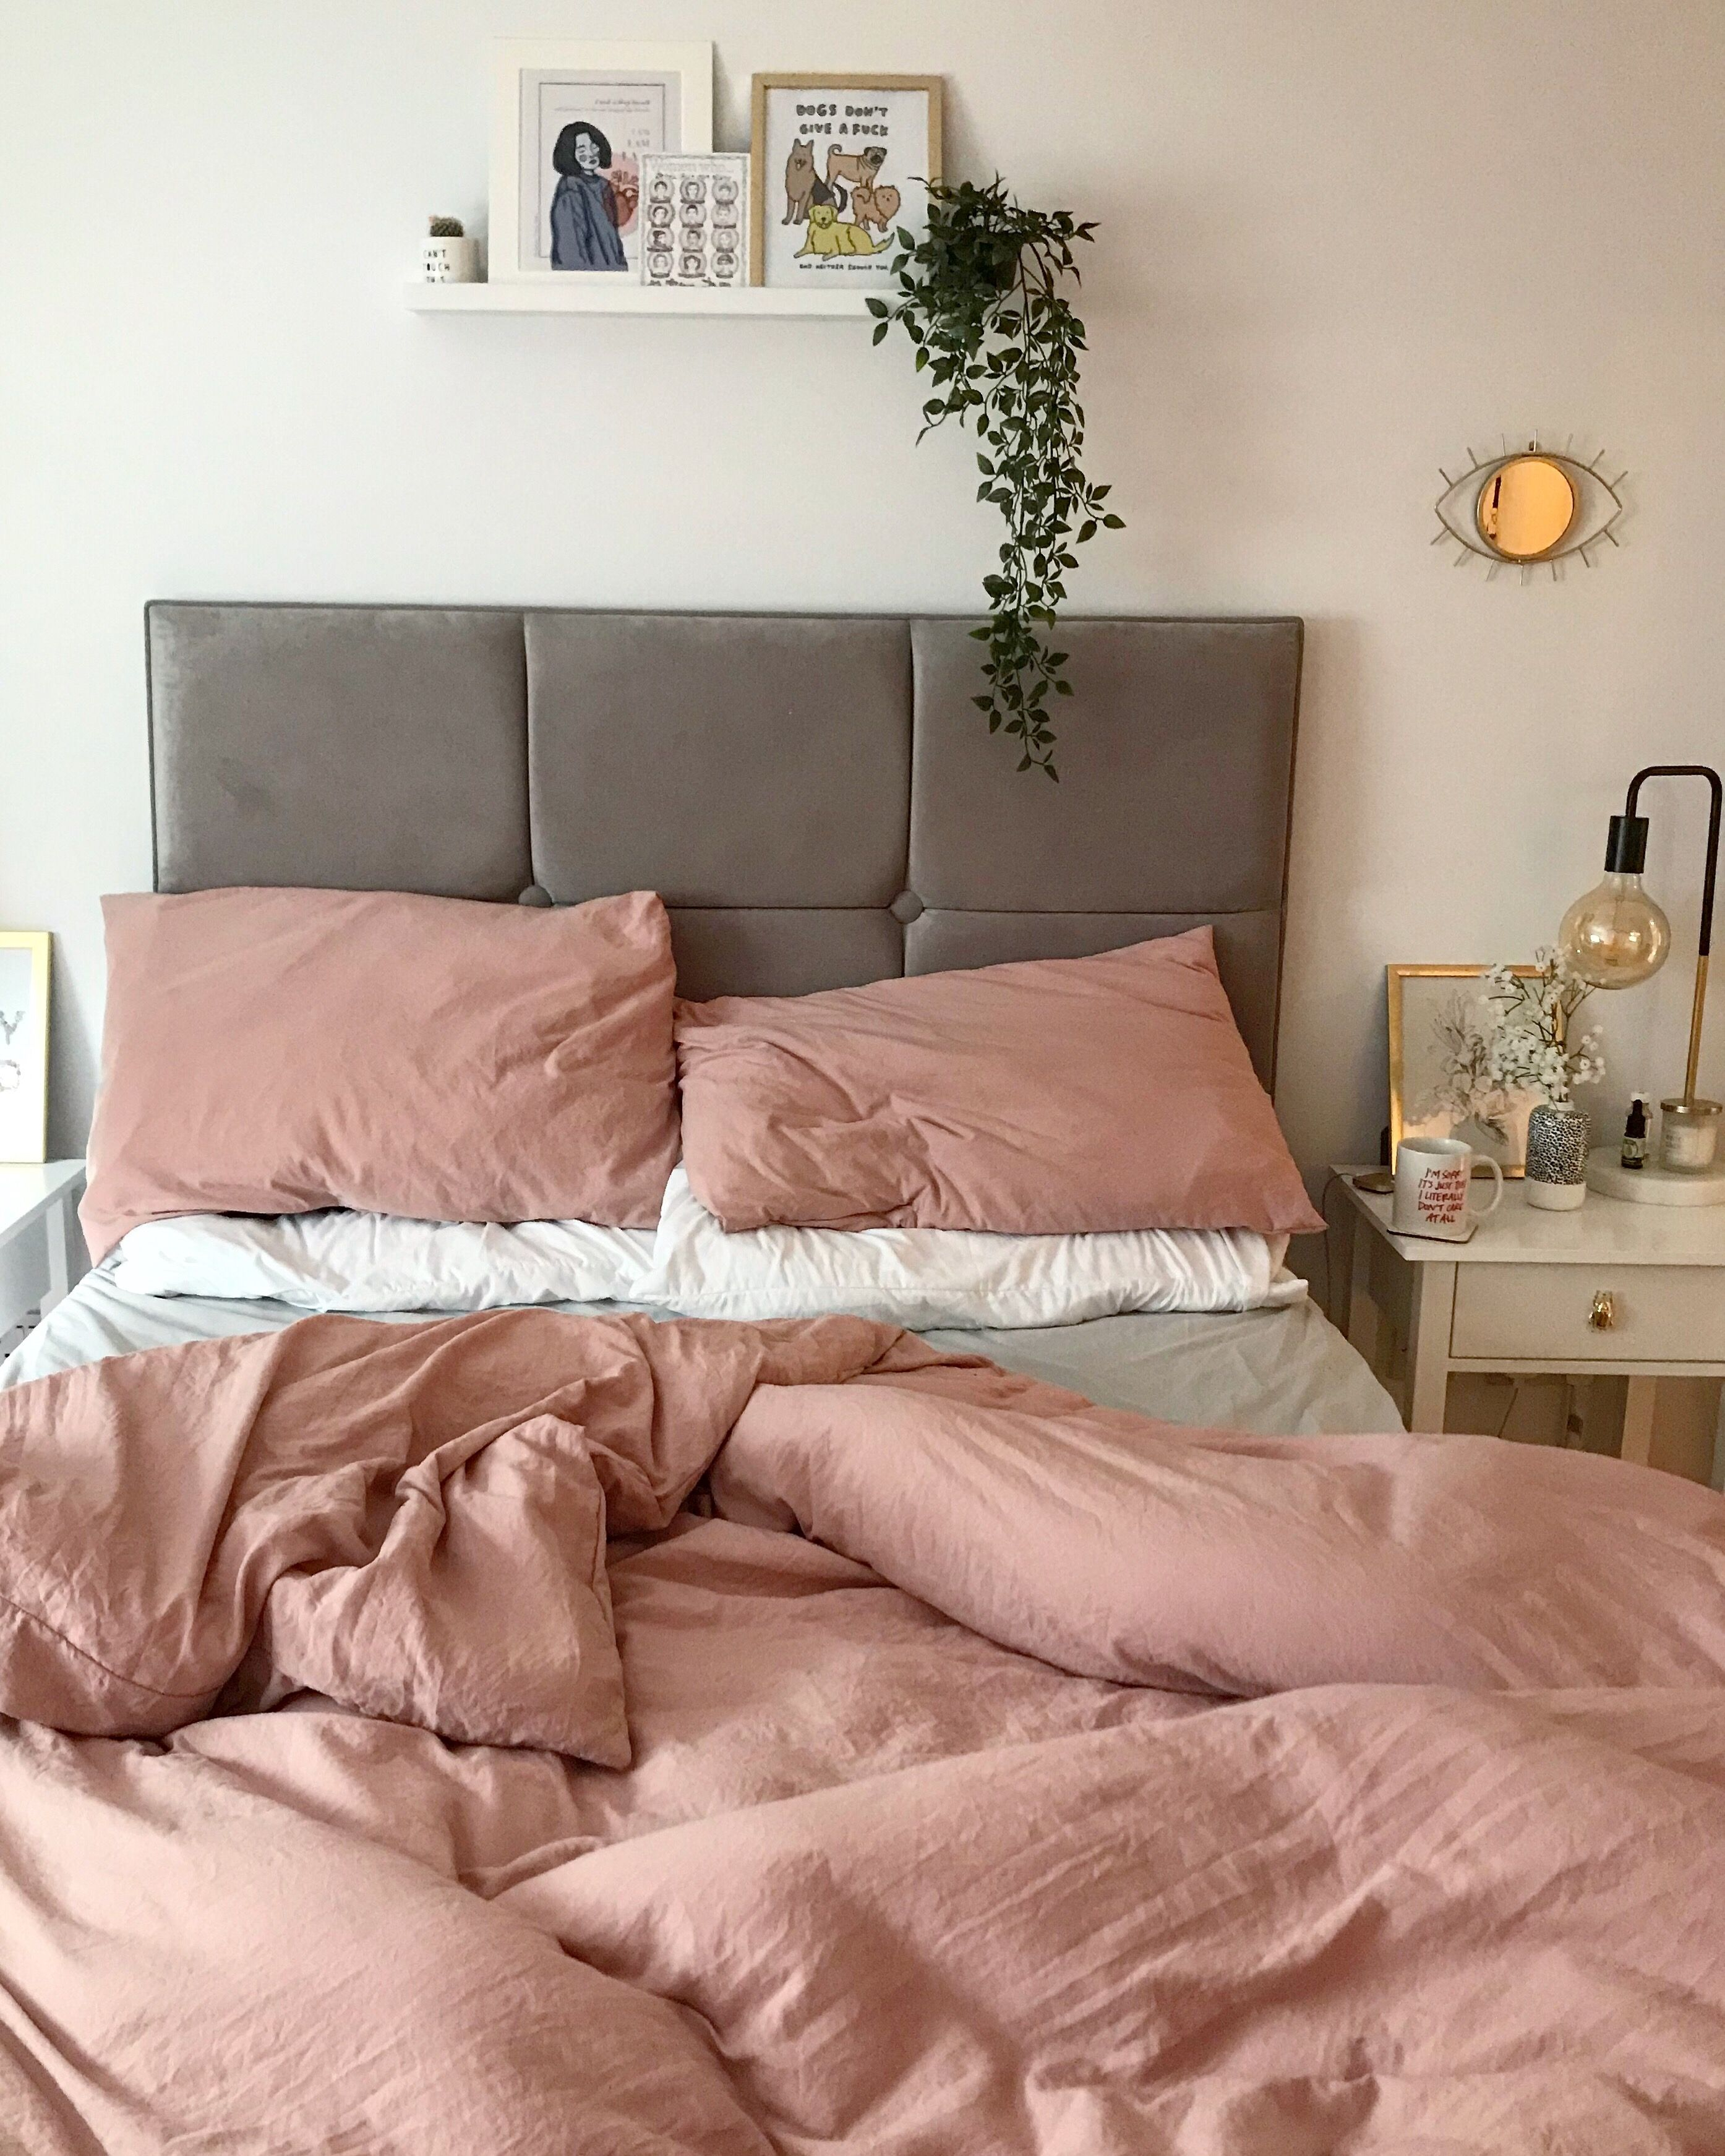 Pink And Grey Boho Bedroom With Plants Room Inspiration Bedroom